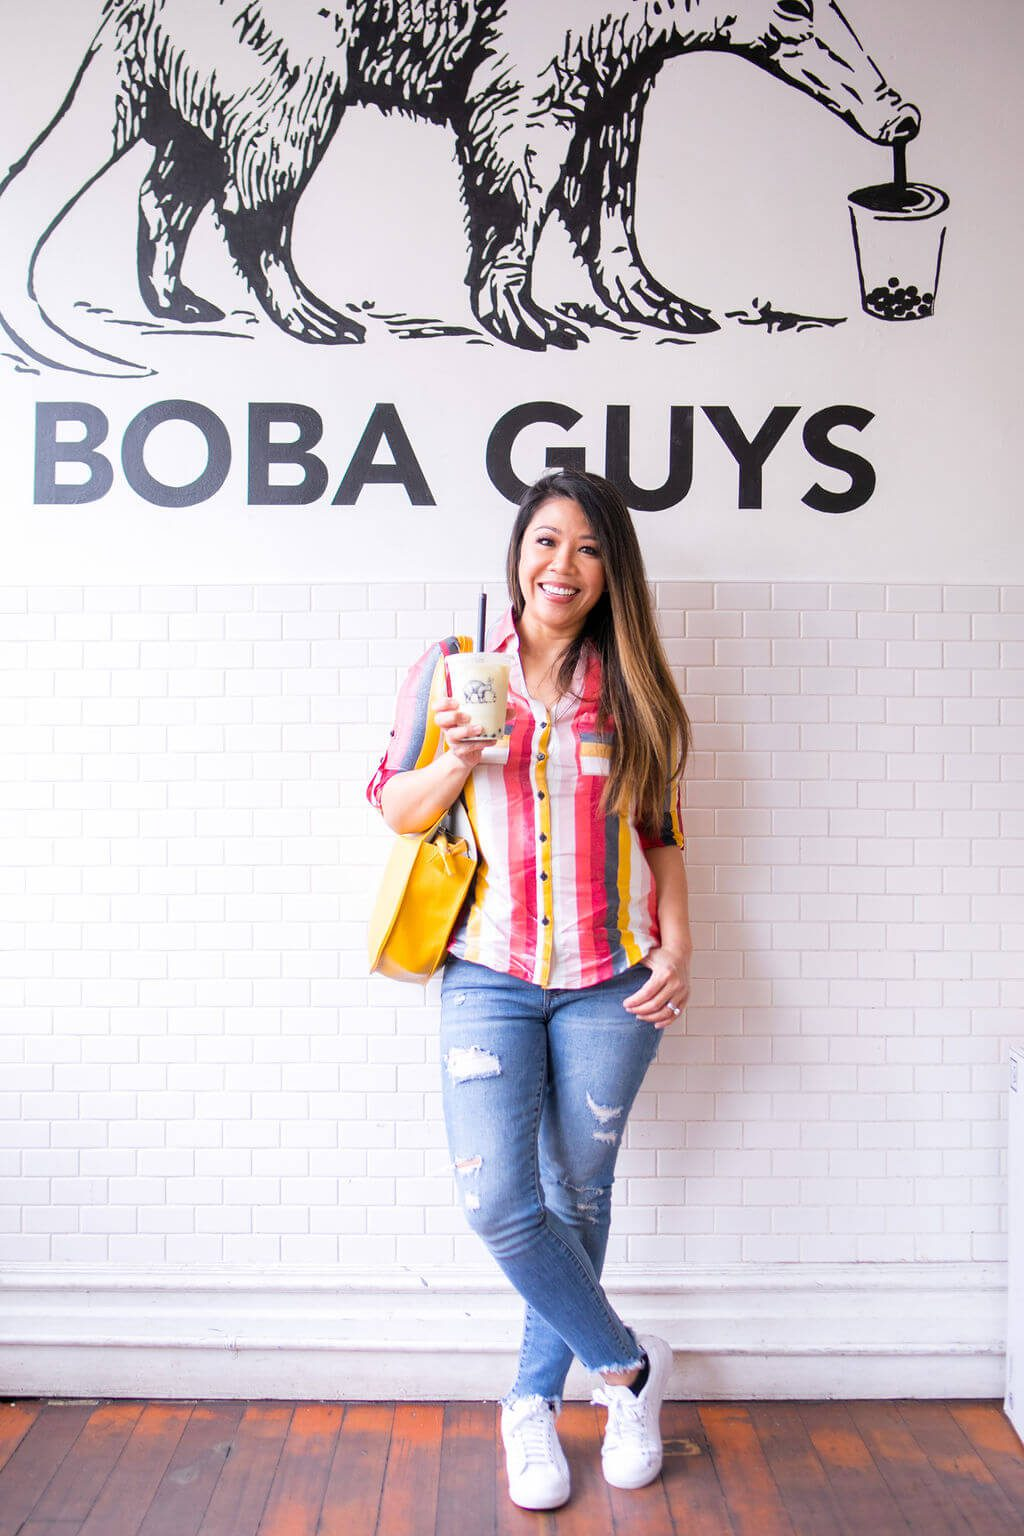 boba guys, #bobaguys, boba guys mission, boba guys SF, boba guys san francisco, pearl tea in sf, bubble tea in sf, pearl tea in san francisco, bubble tea in san francisco, milk tea in sf, milk tea in san francisco, Places to eat in san Francisco, famous places to eat in san francisco, trendy places to eat in san francisco, unique restaurants in san francisco, best value restaurants san francisco, best restaurants in san francisco , best restaurants in san francisco union square, best restaurants in san Francisco mission, must eat in san francisco, places to eat in SF, places to eat in SF Mission